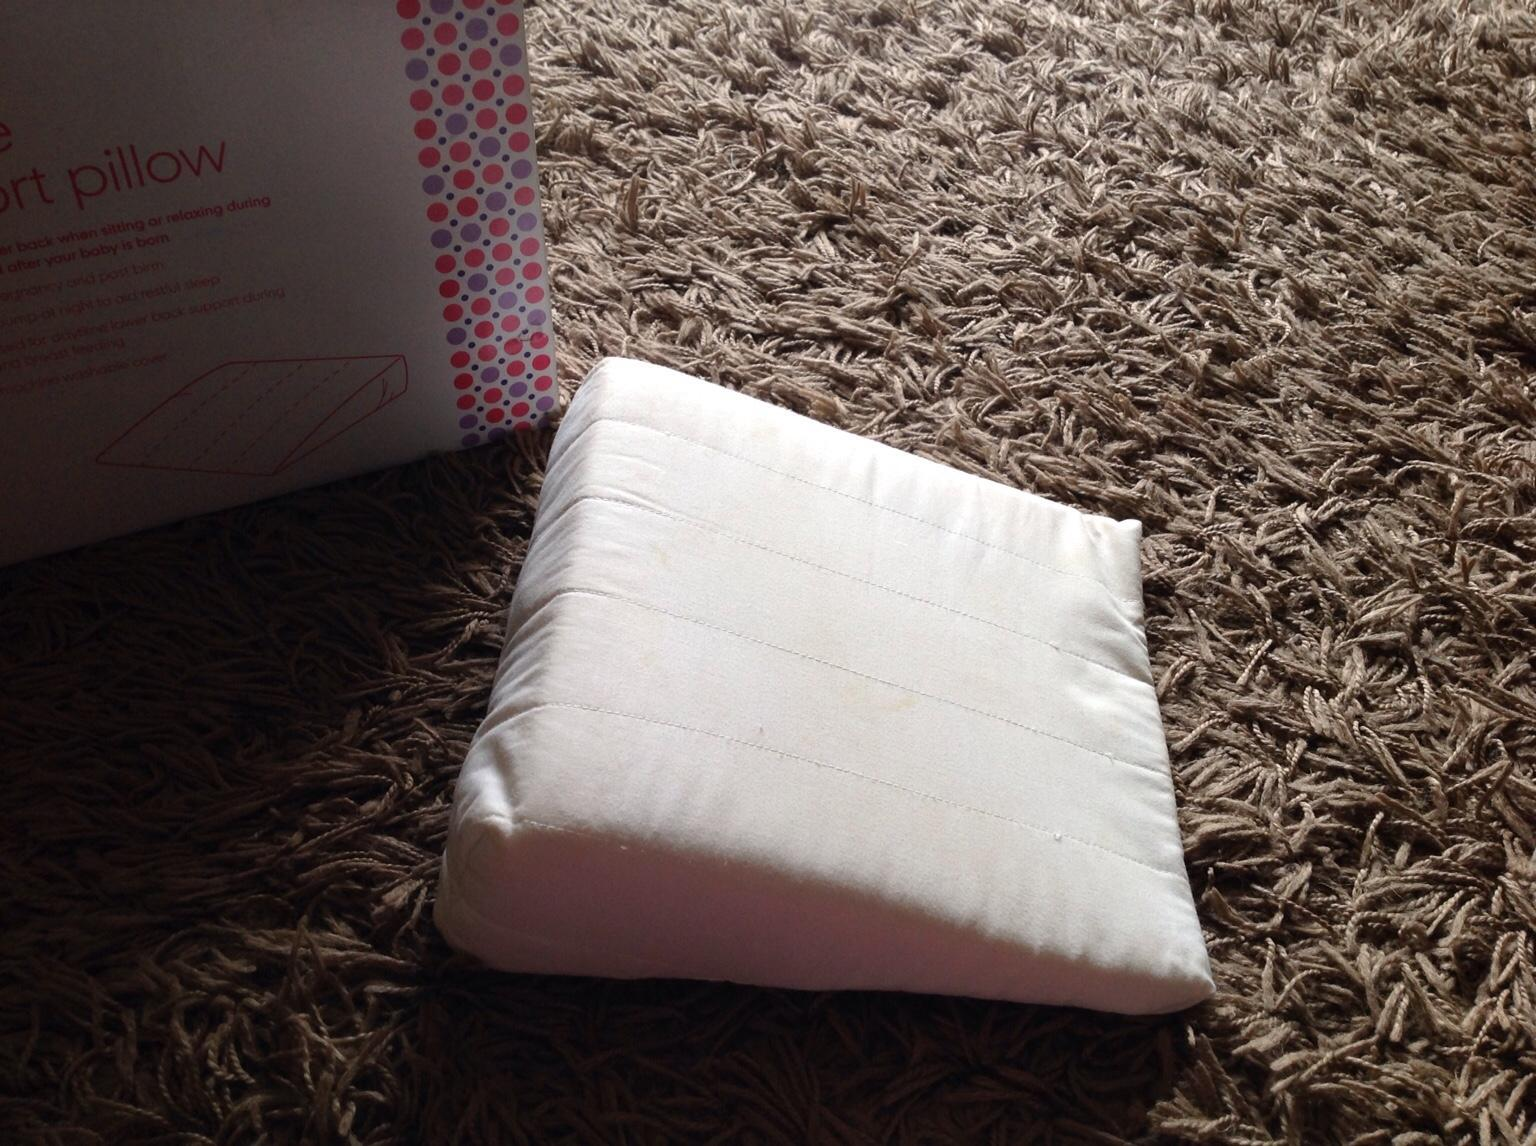 Maternity wedge pillow in Wigan for £5